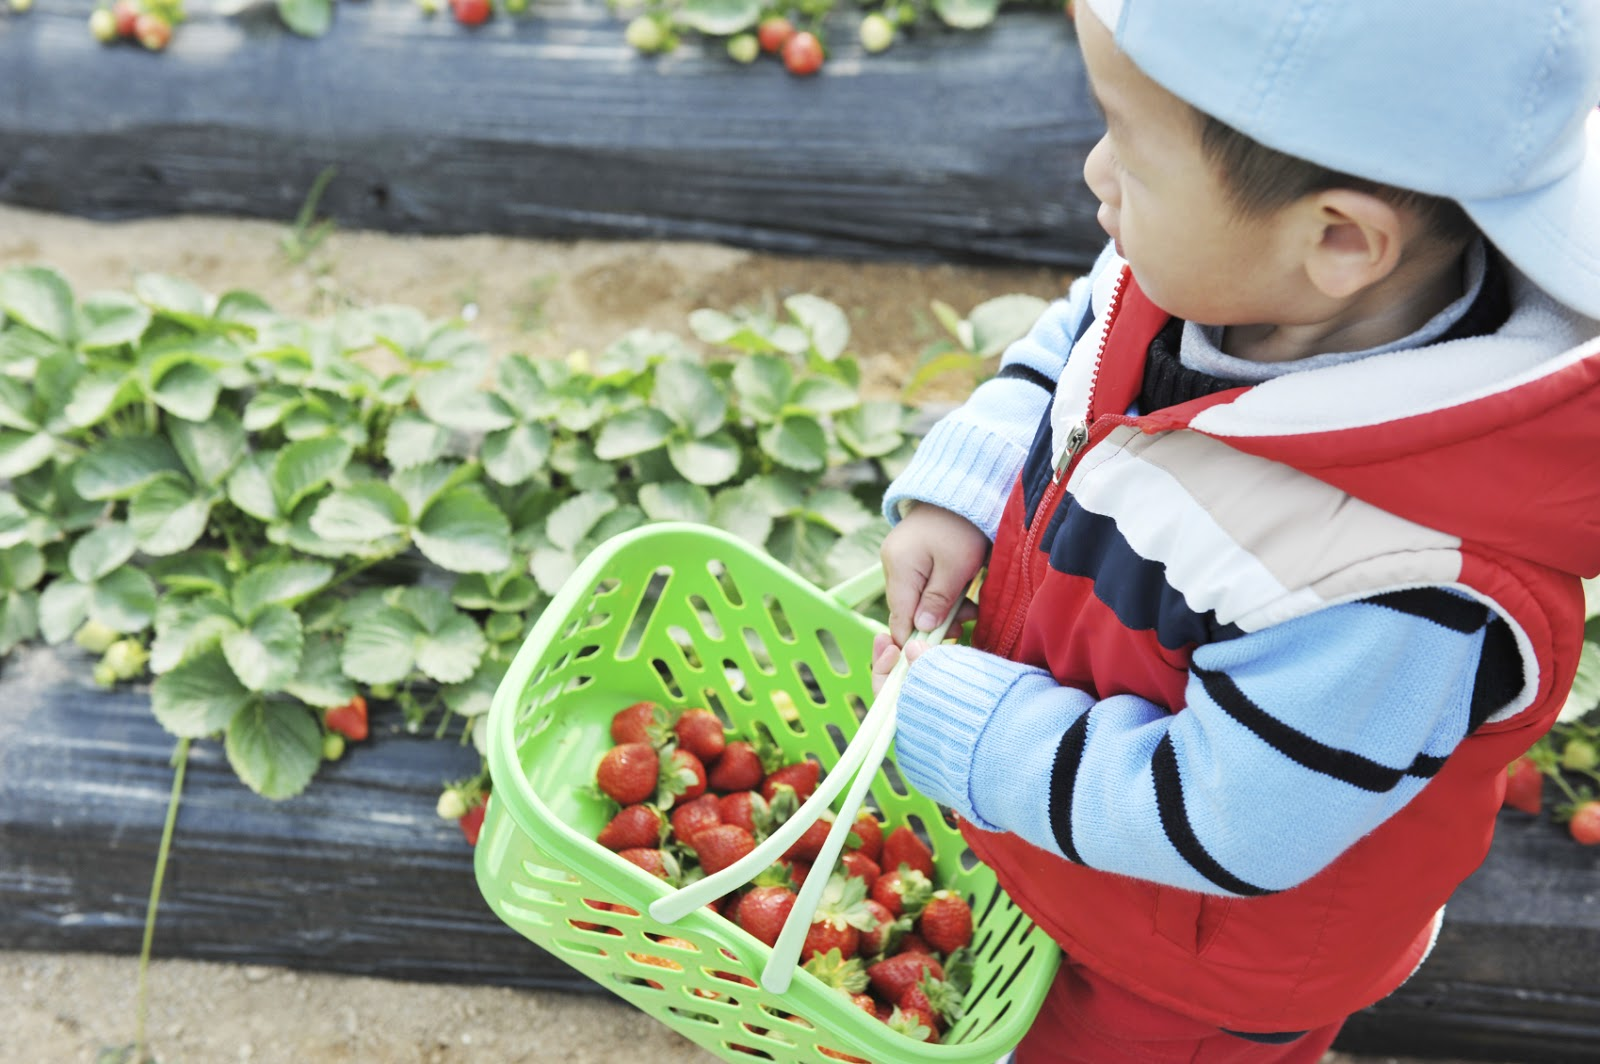 NAMC montessori educating the whole child boy carrying basket of strawberries